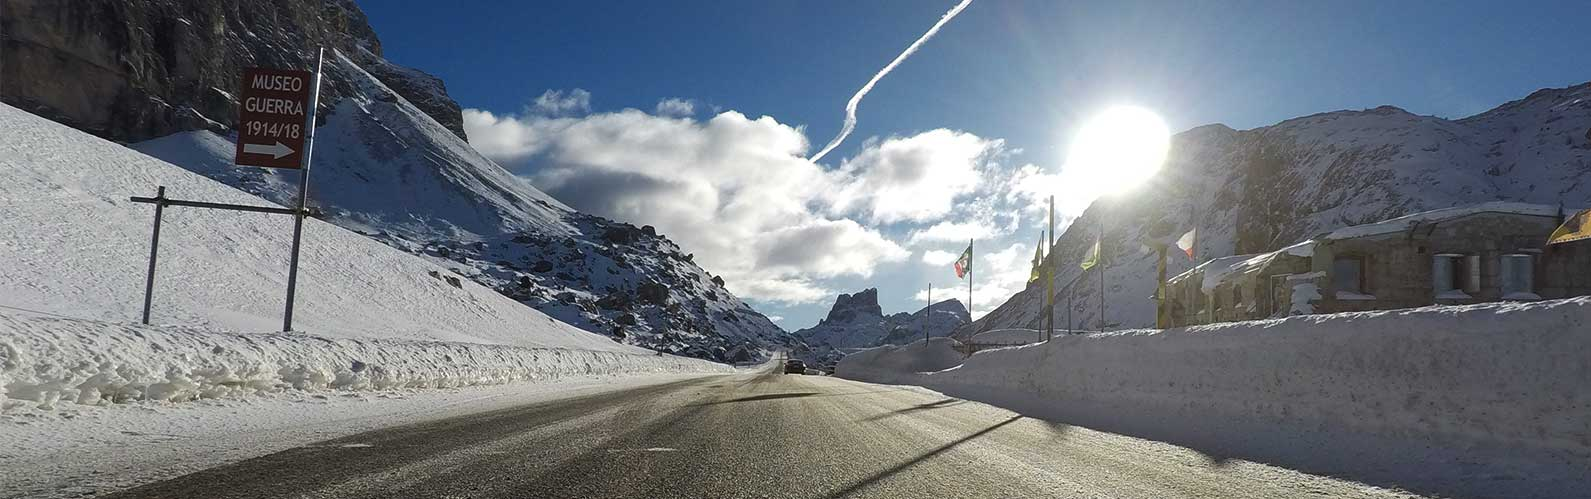 Dolomiti_tour_safari_ski